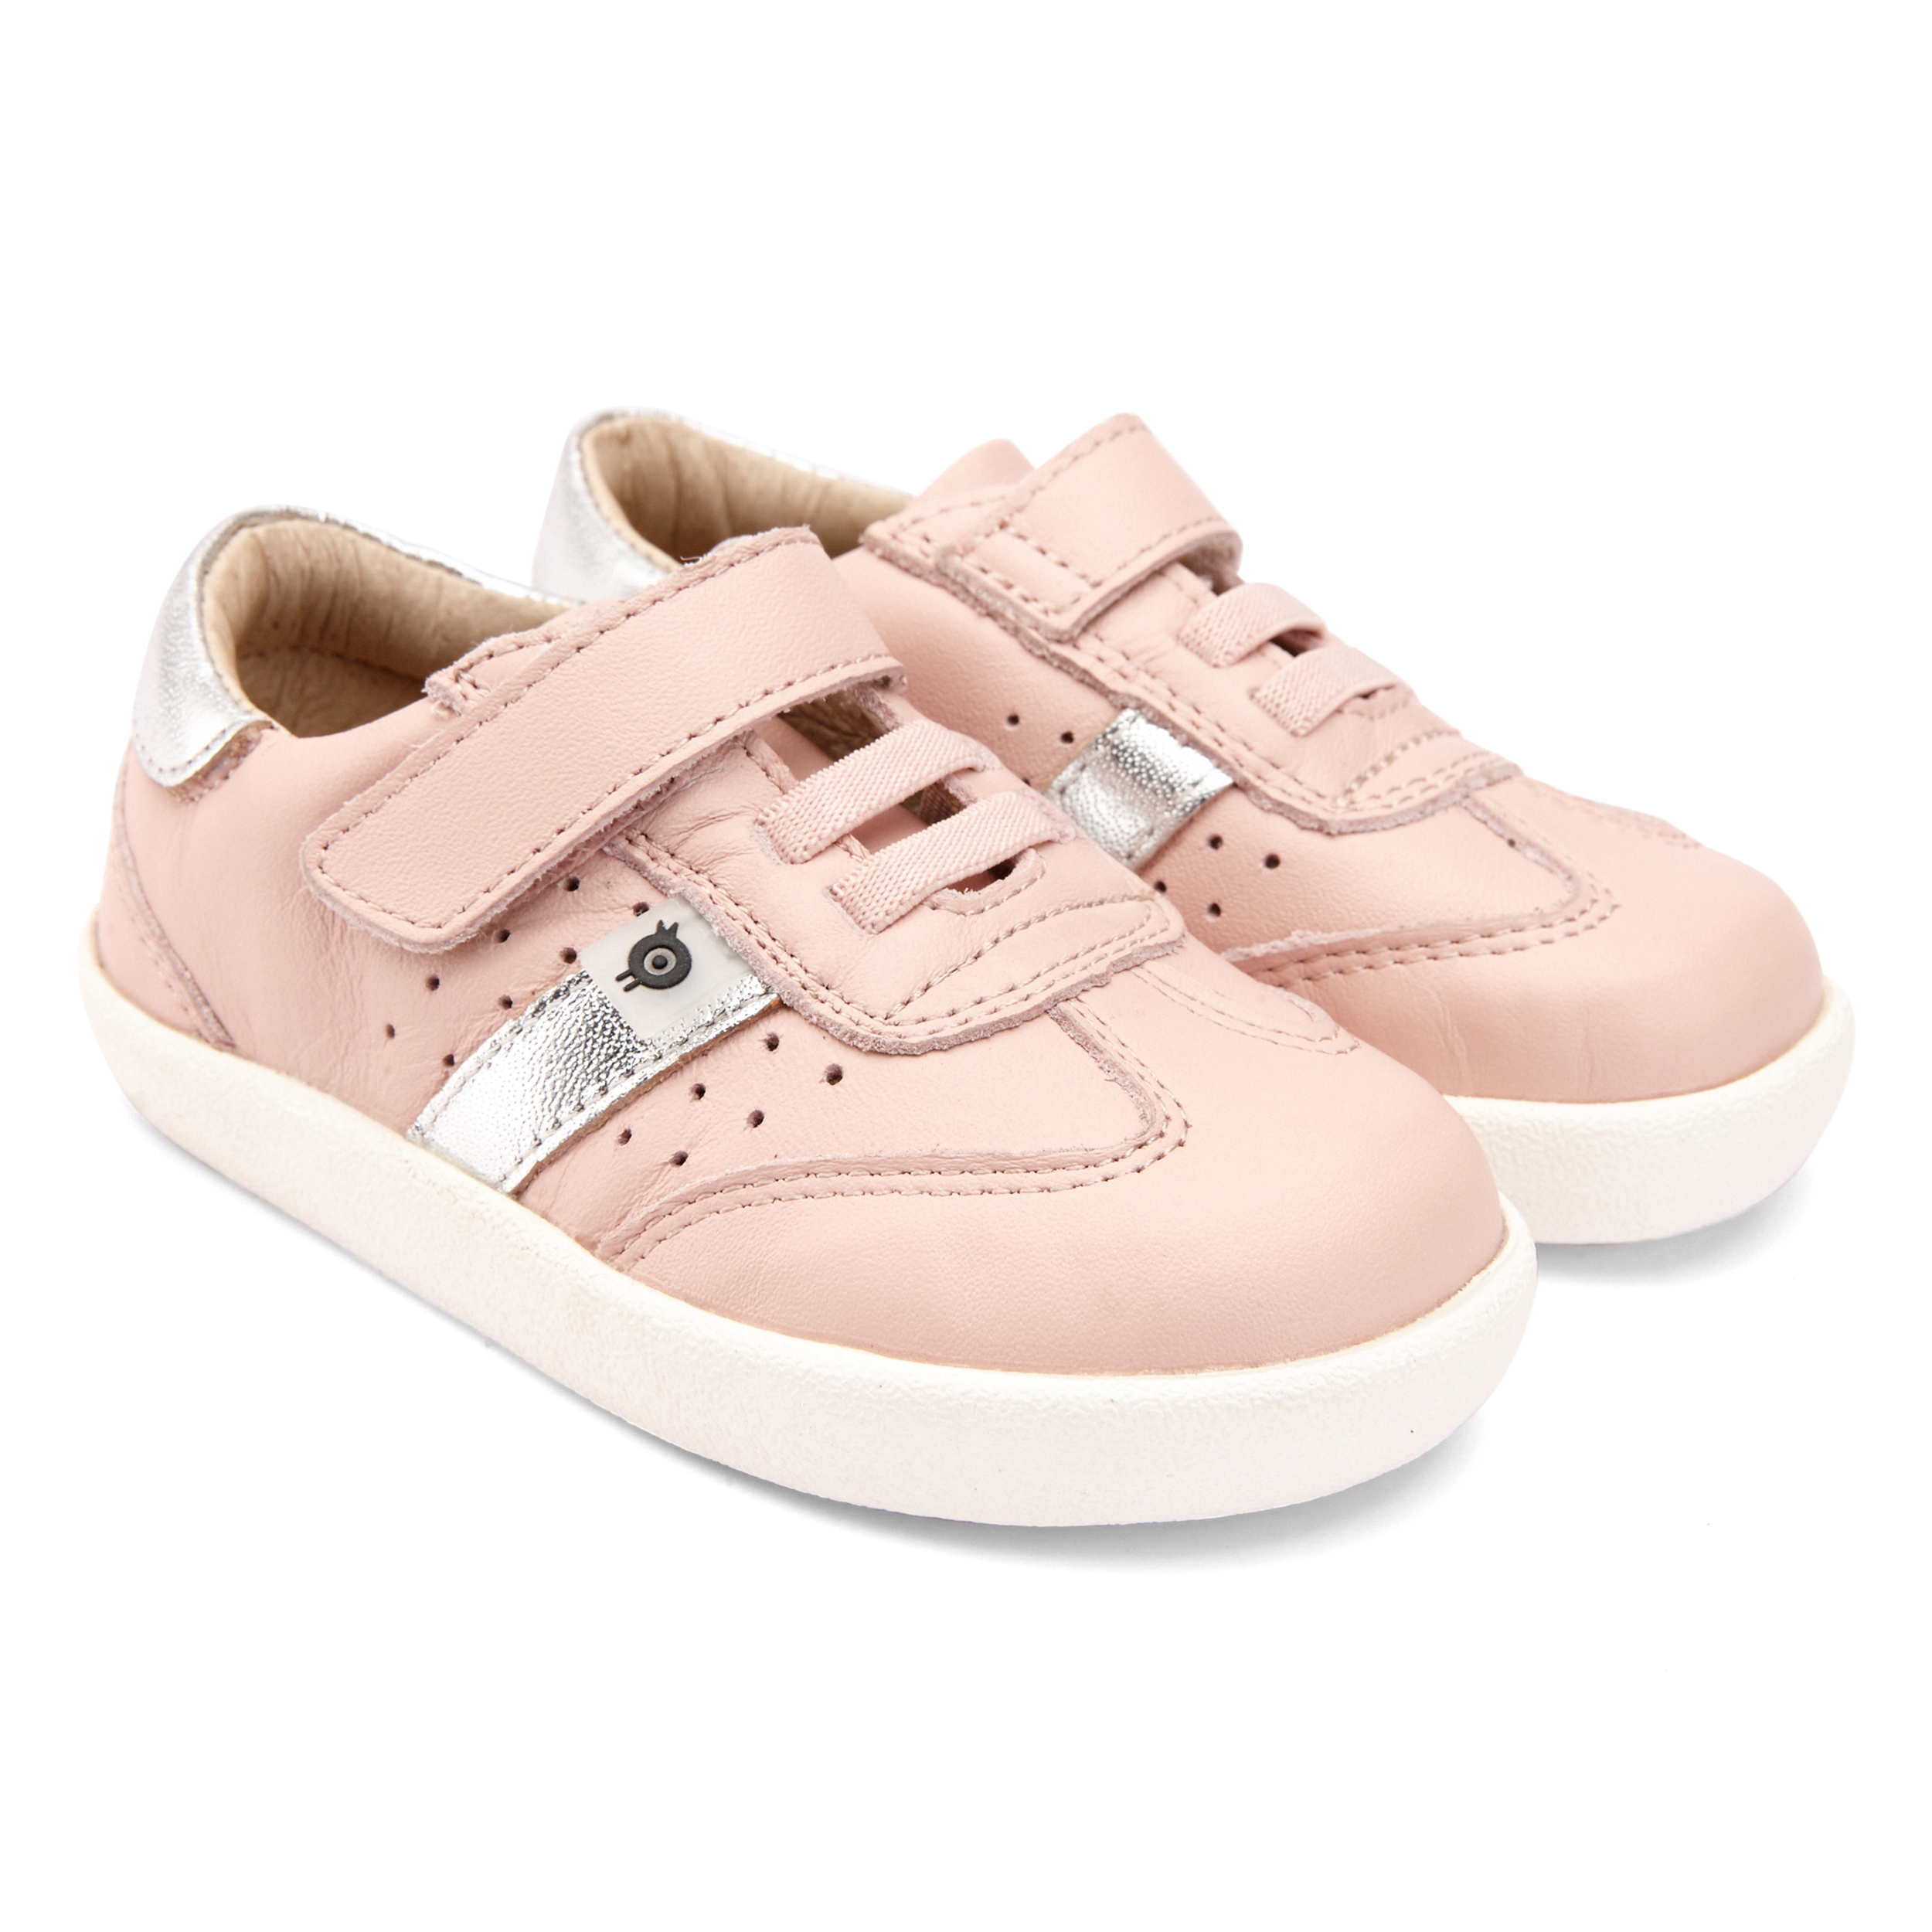 OLD SOLES Loadout Powder Pink and Silver Trainers 5065